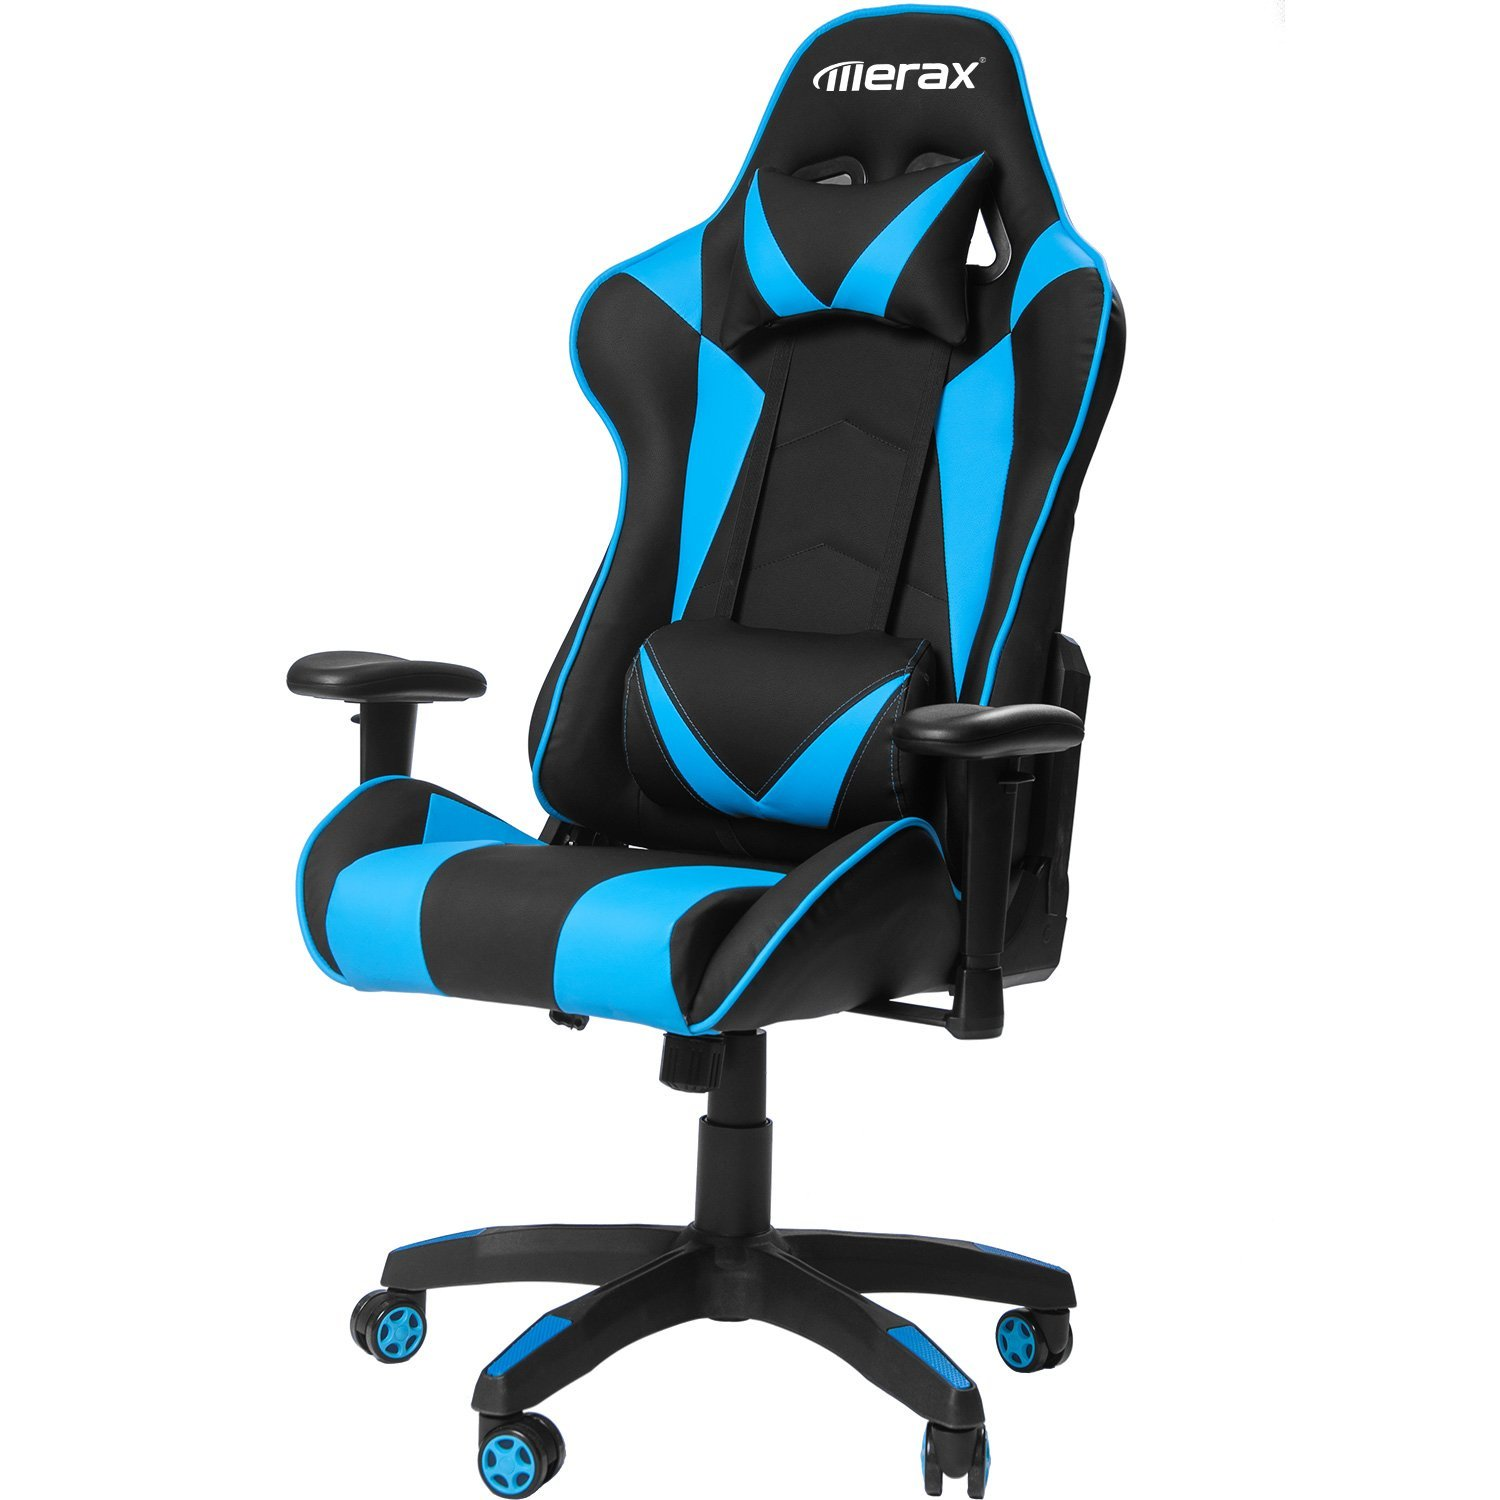 Gamer Chairs Best Cheap Gaming Chairs Merax Ergonomics Review